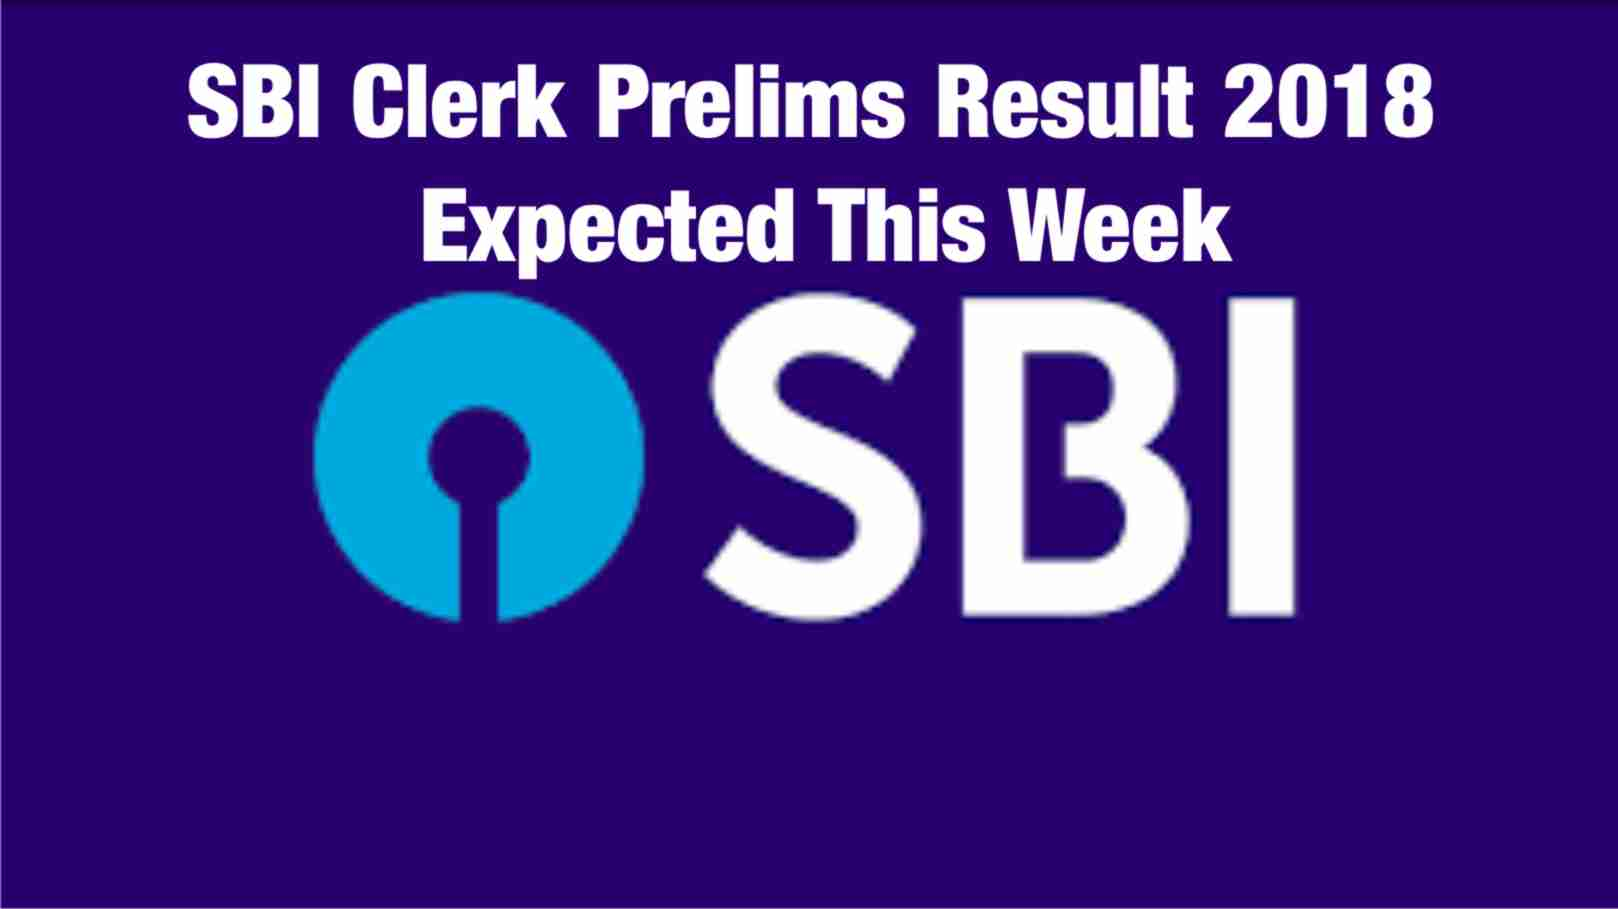 SBI Clerk Prelims Result 2018 - Expected This Week